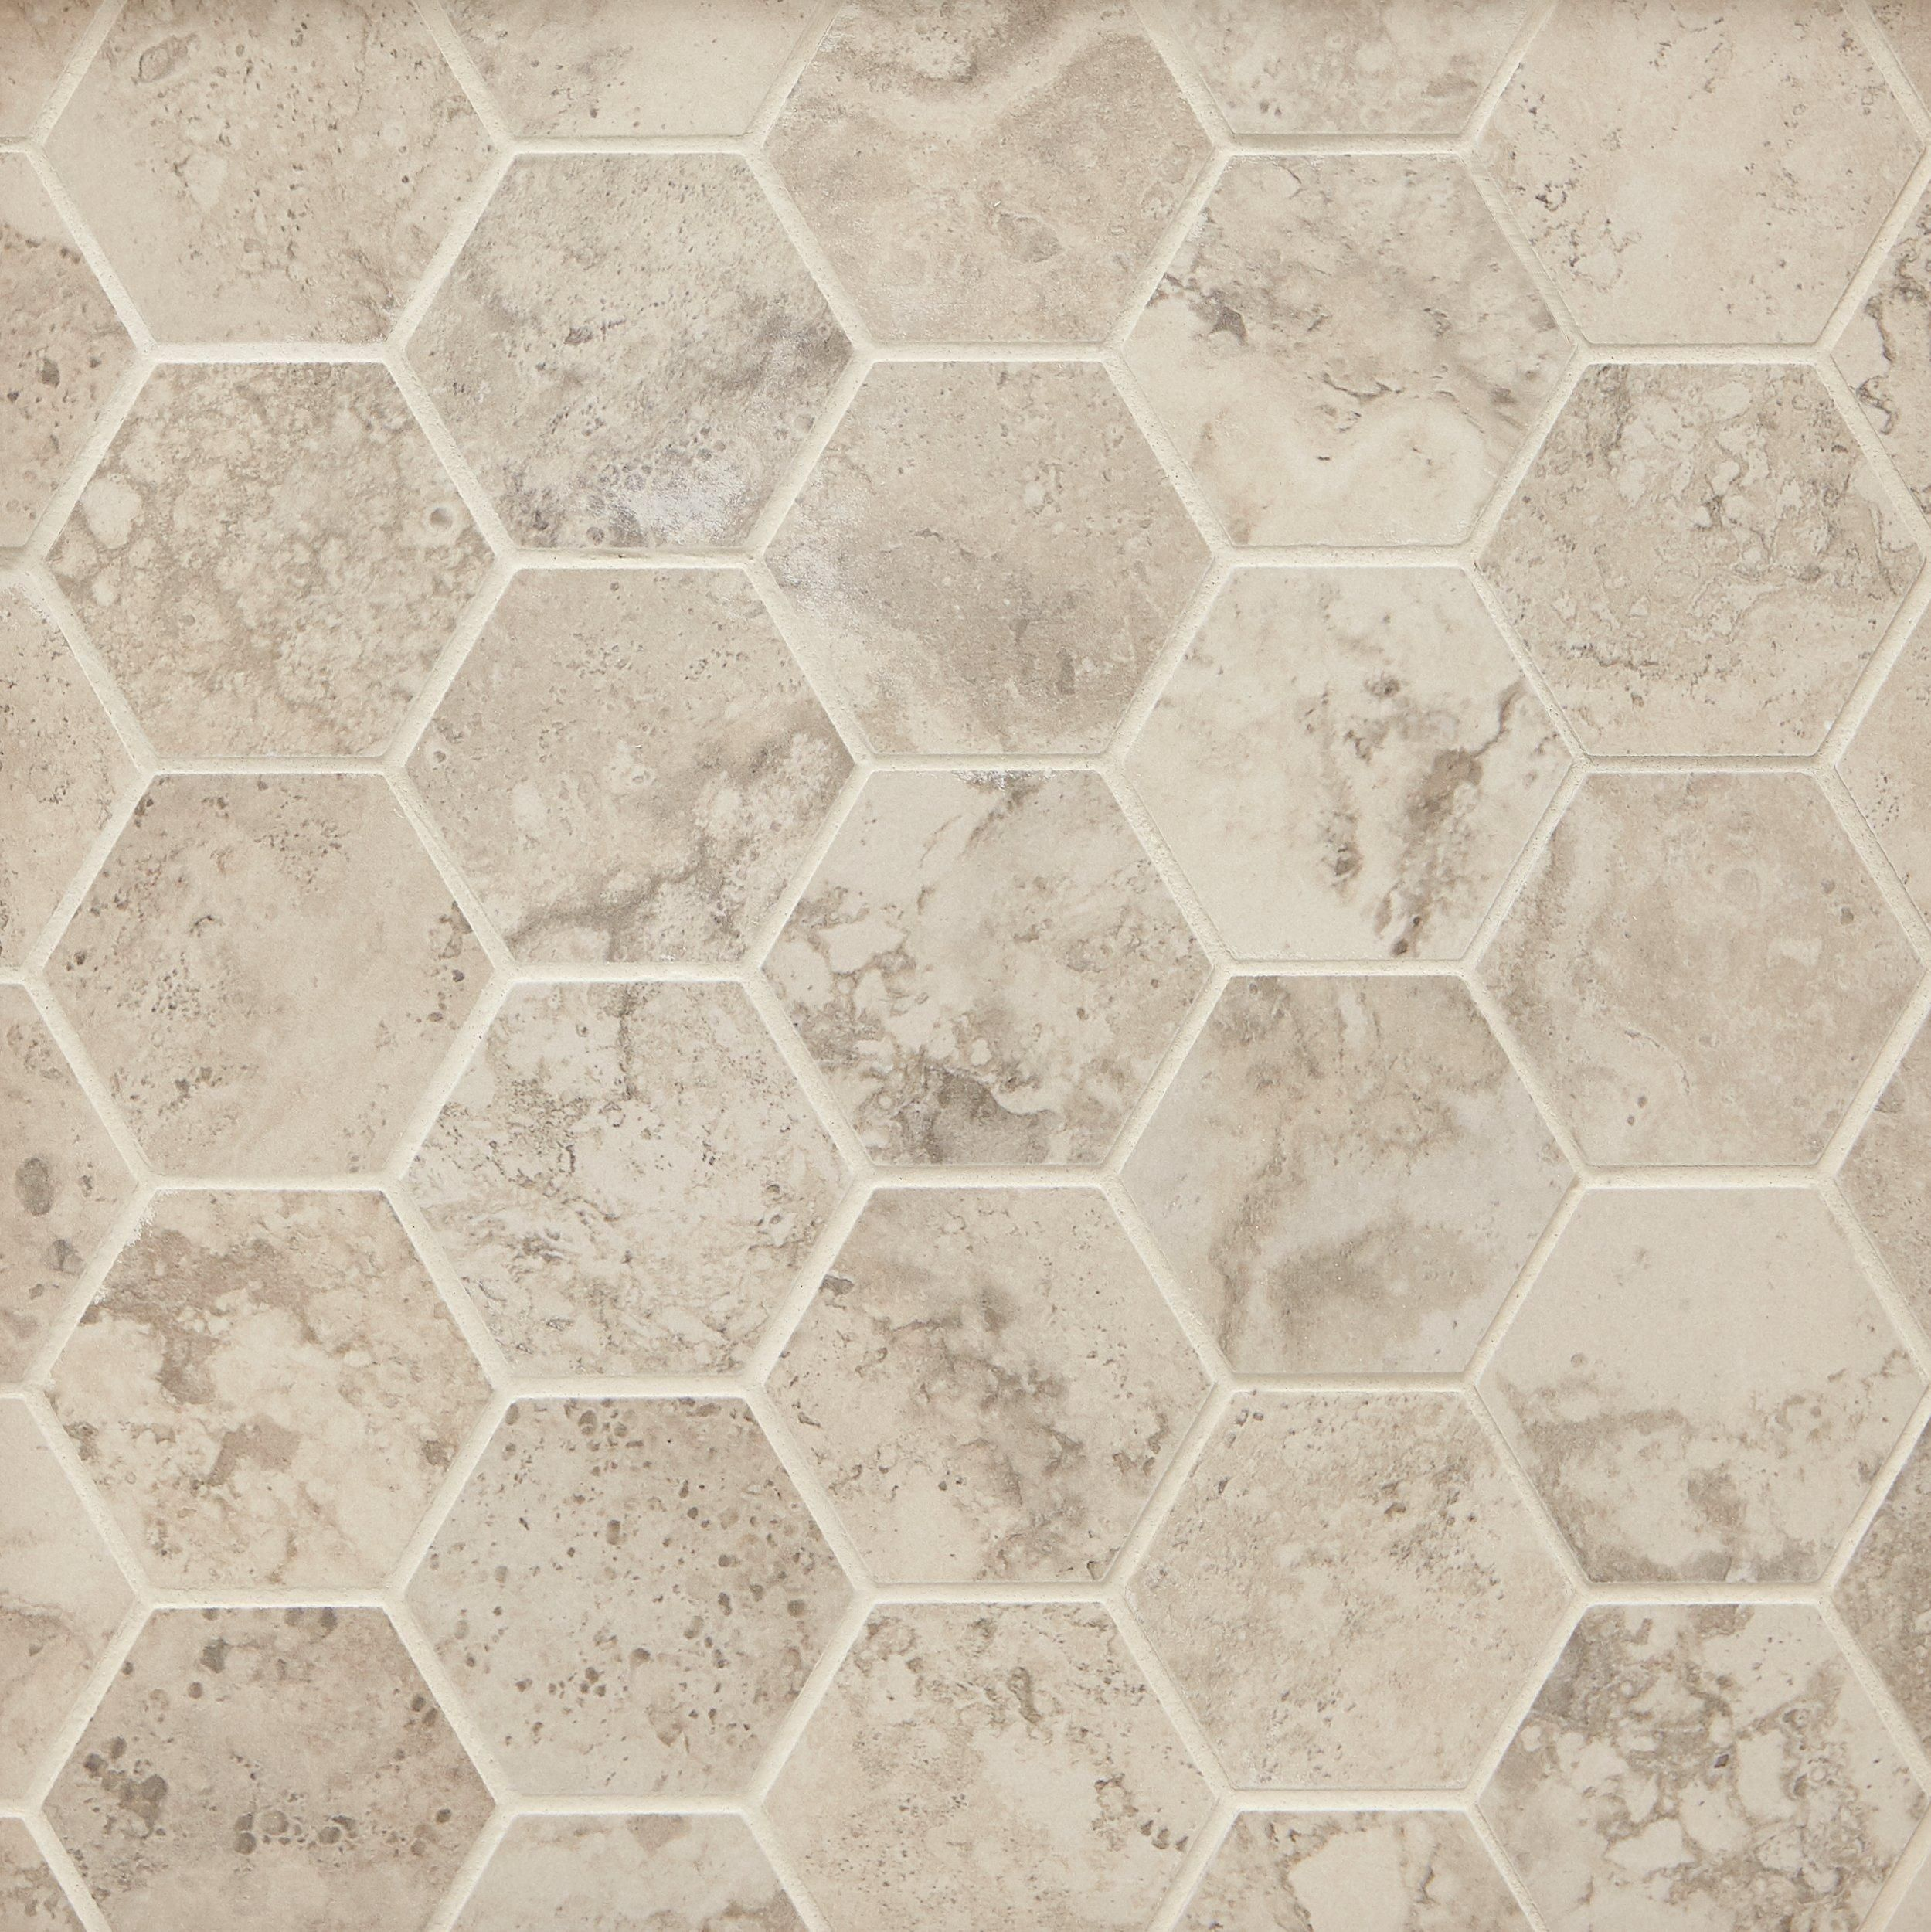 Tarsus Almond Ii Hexagon Porcelain Mosaic In 2020 Porcelain Mosaic Stone Look Tile Porcelain Mosaic Tile